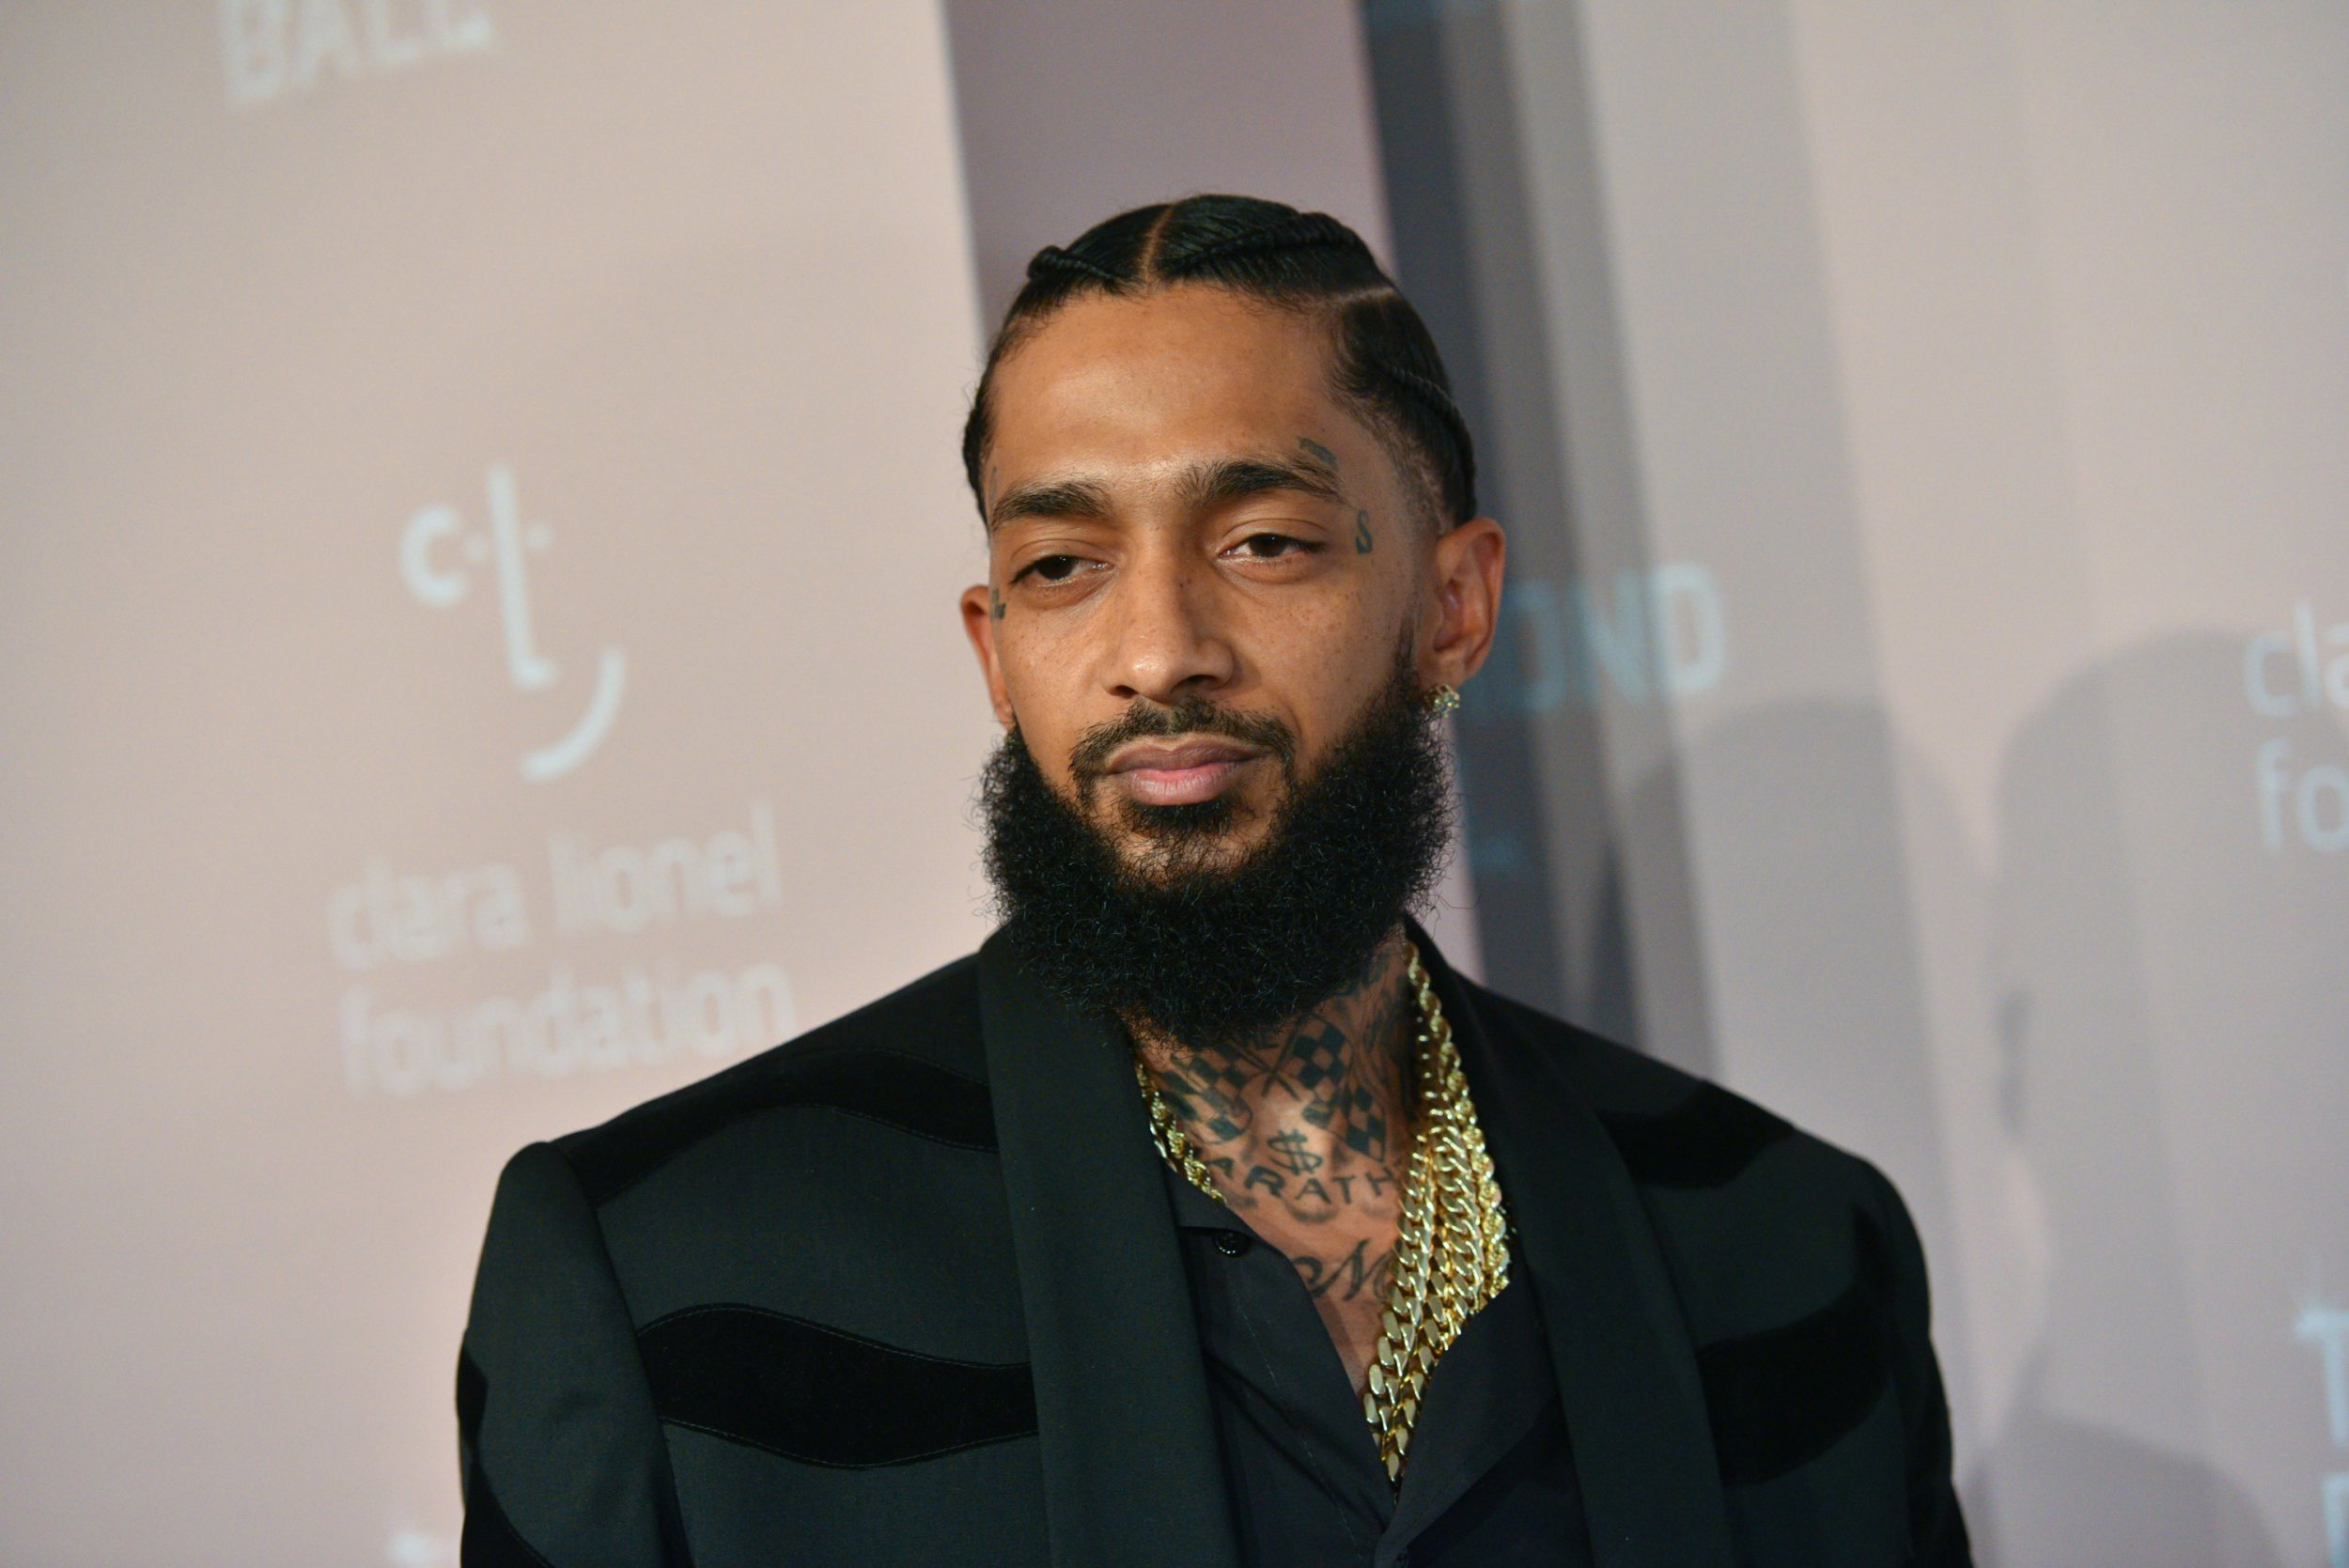 Nipsey Hussle murder case heads to trial as shooting suspect Eric Holder is indicted on new charges